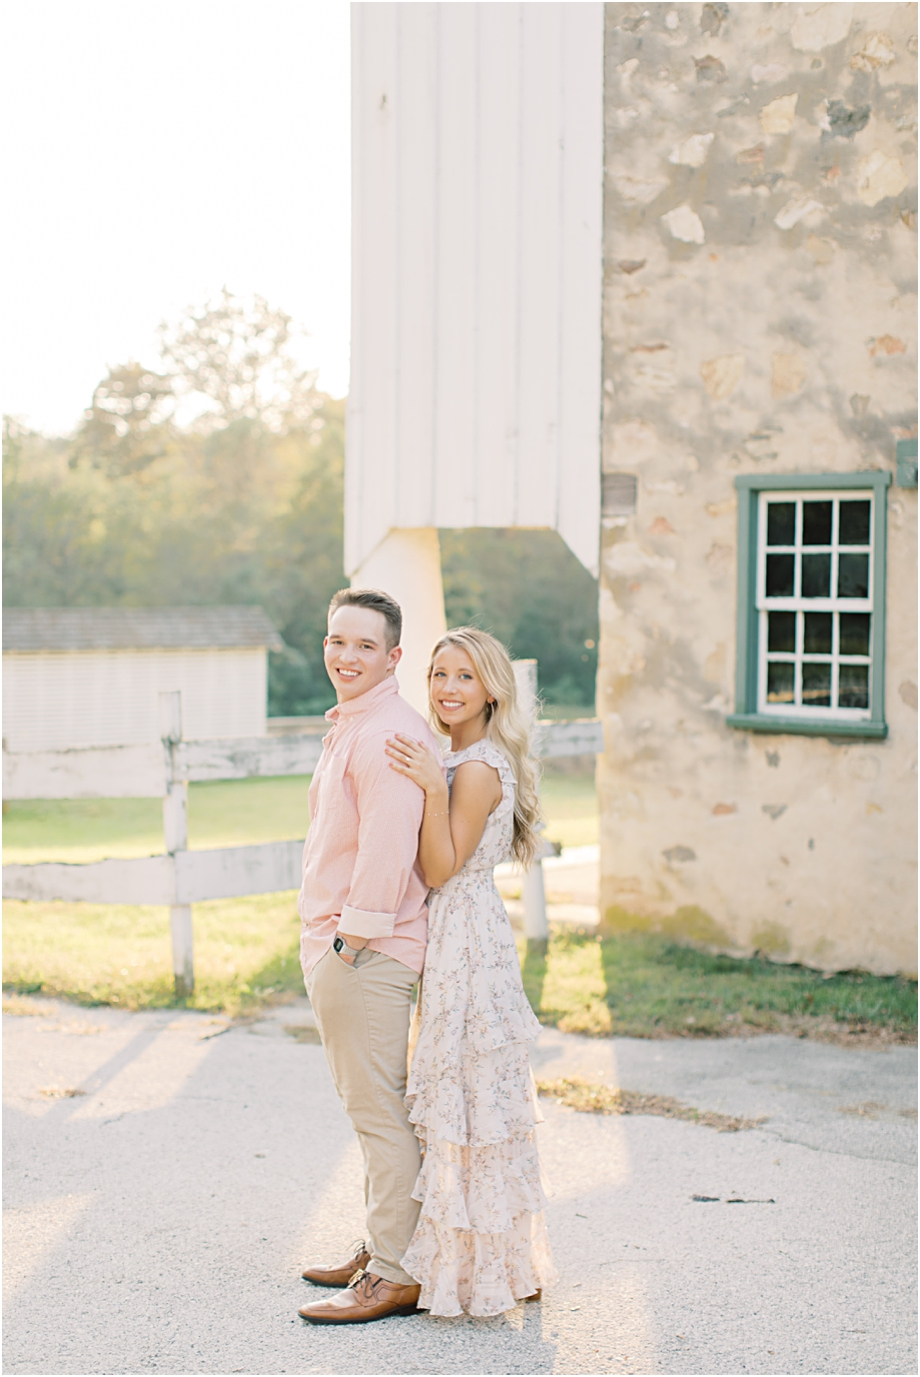 Knox Farm Engagement Session | Valley Forge Engagement Photographer Sarah Canning